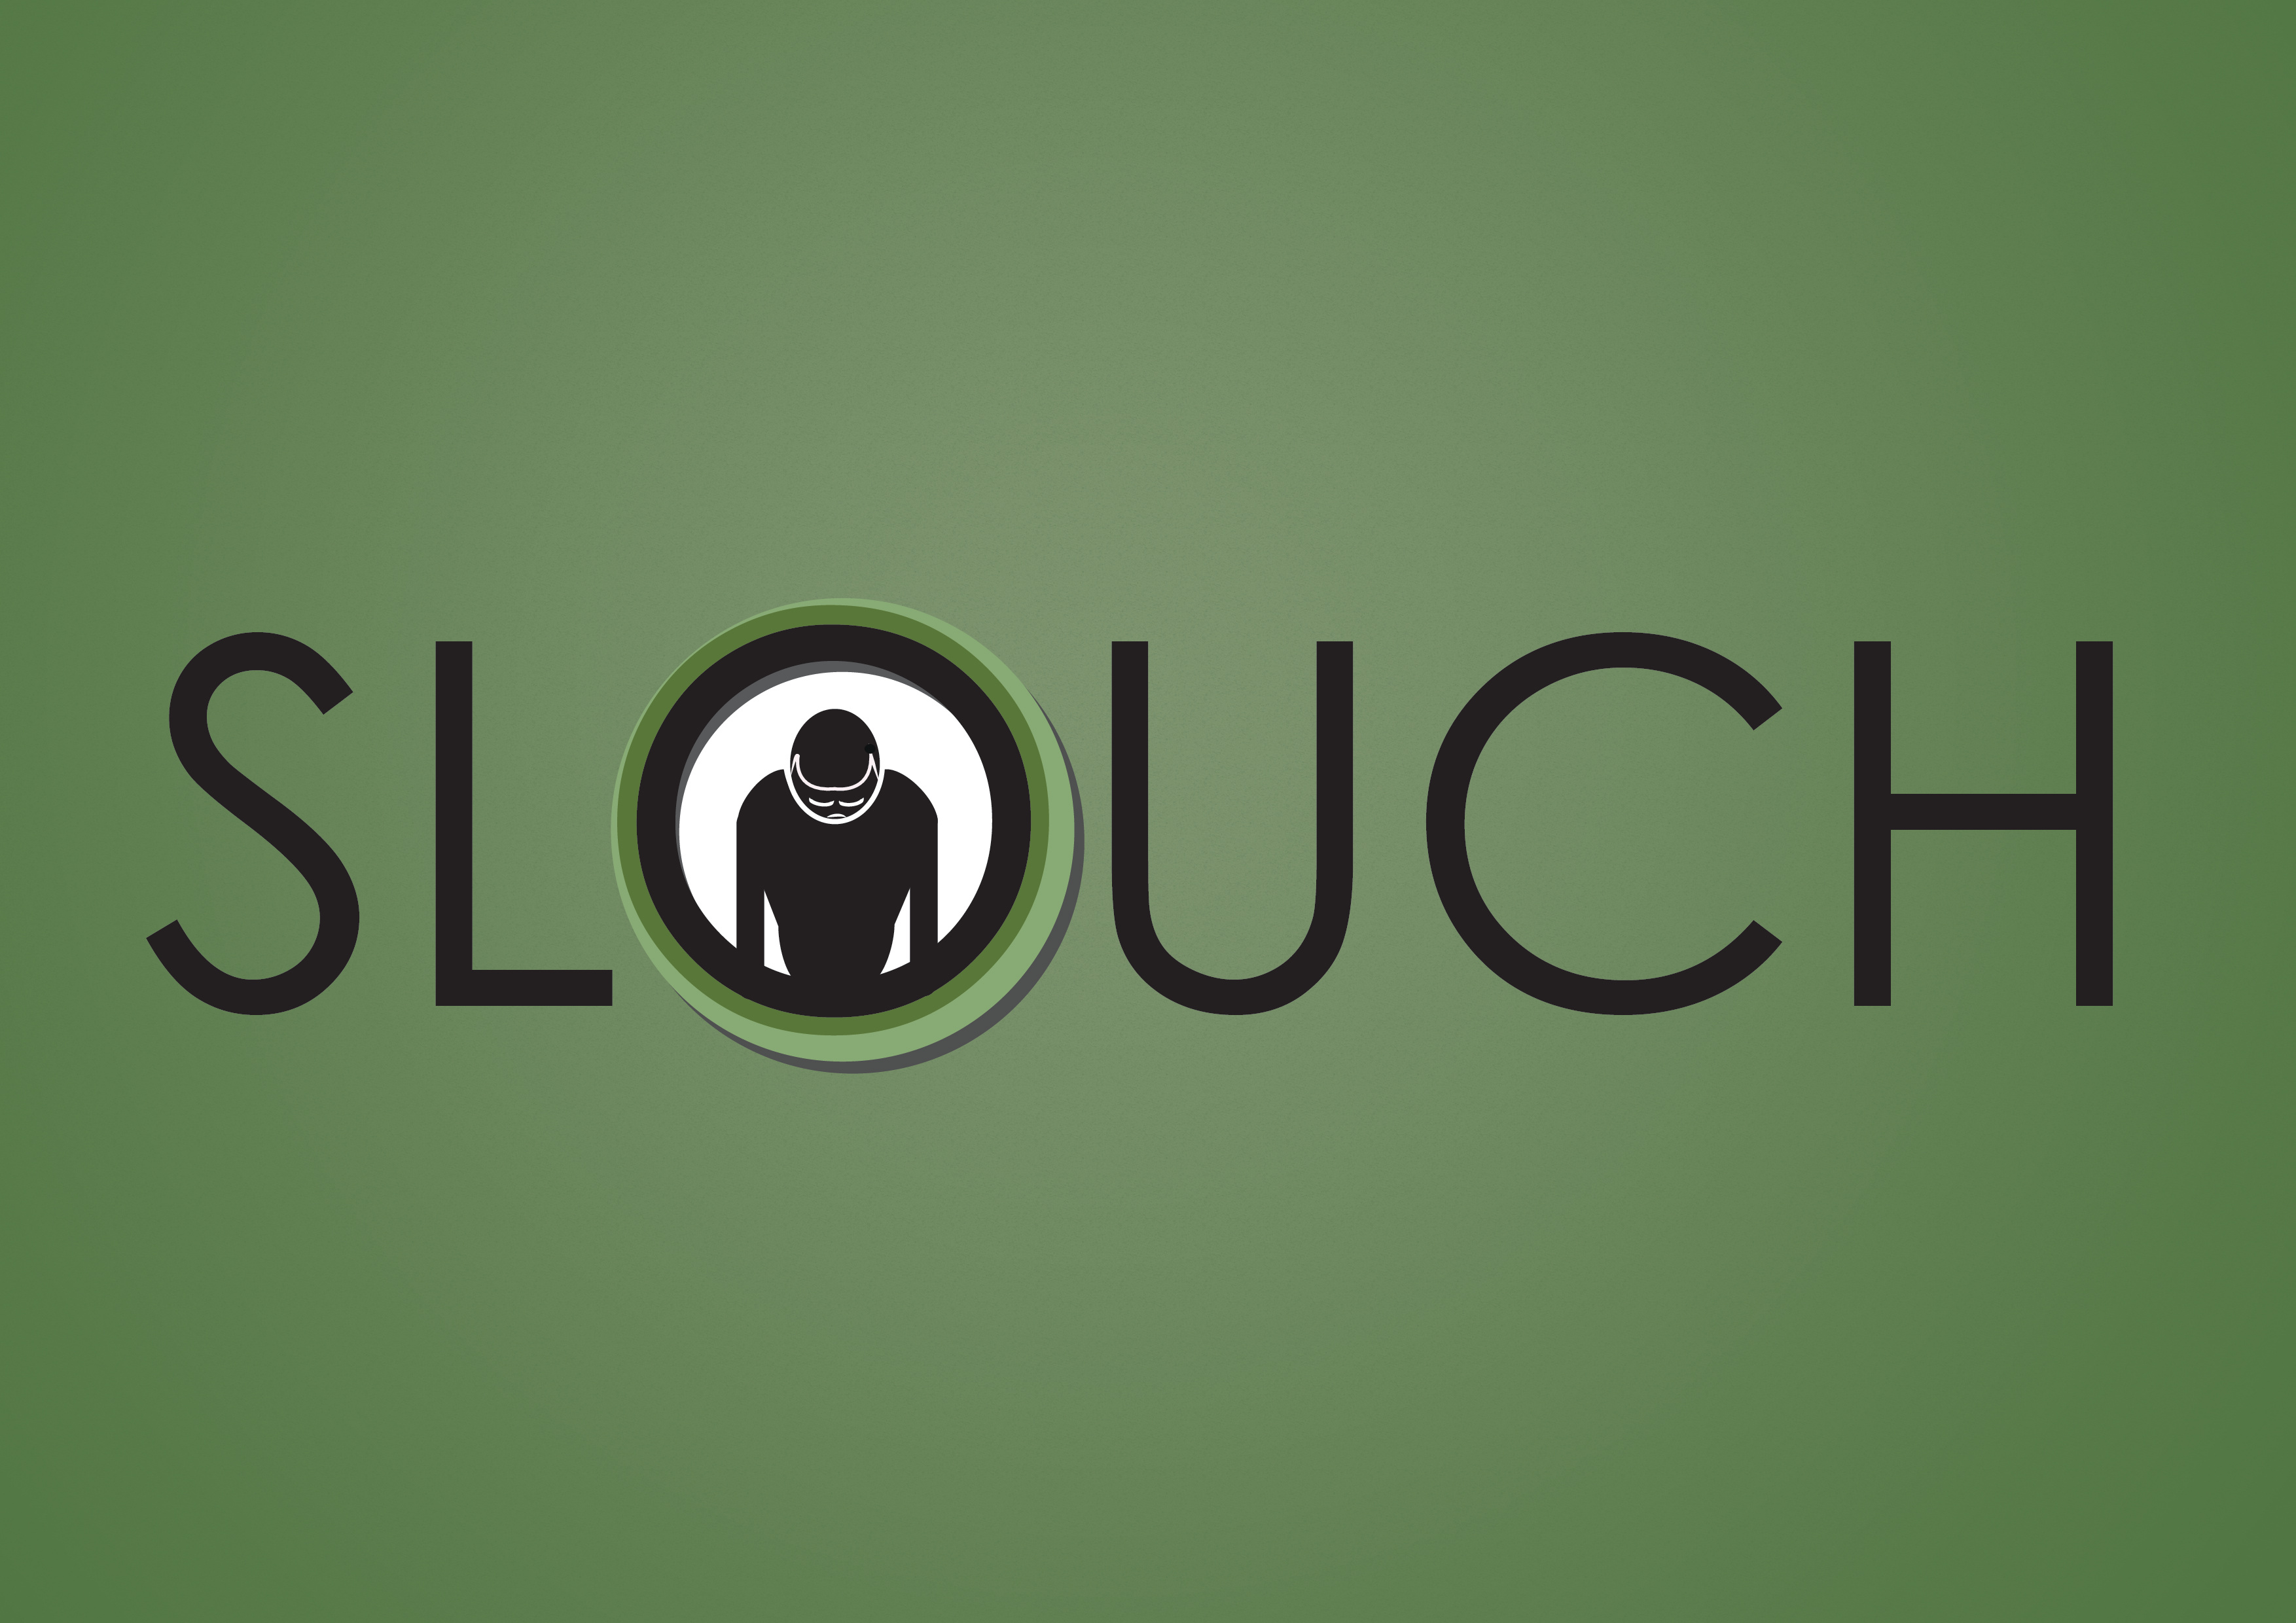 Word and Image Expression - Slouch